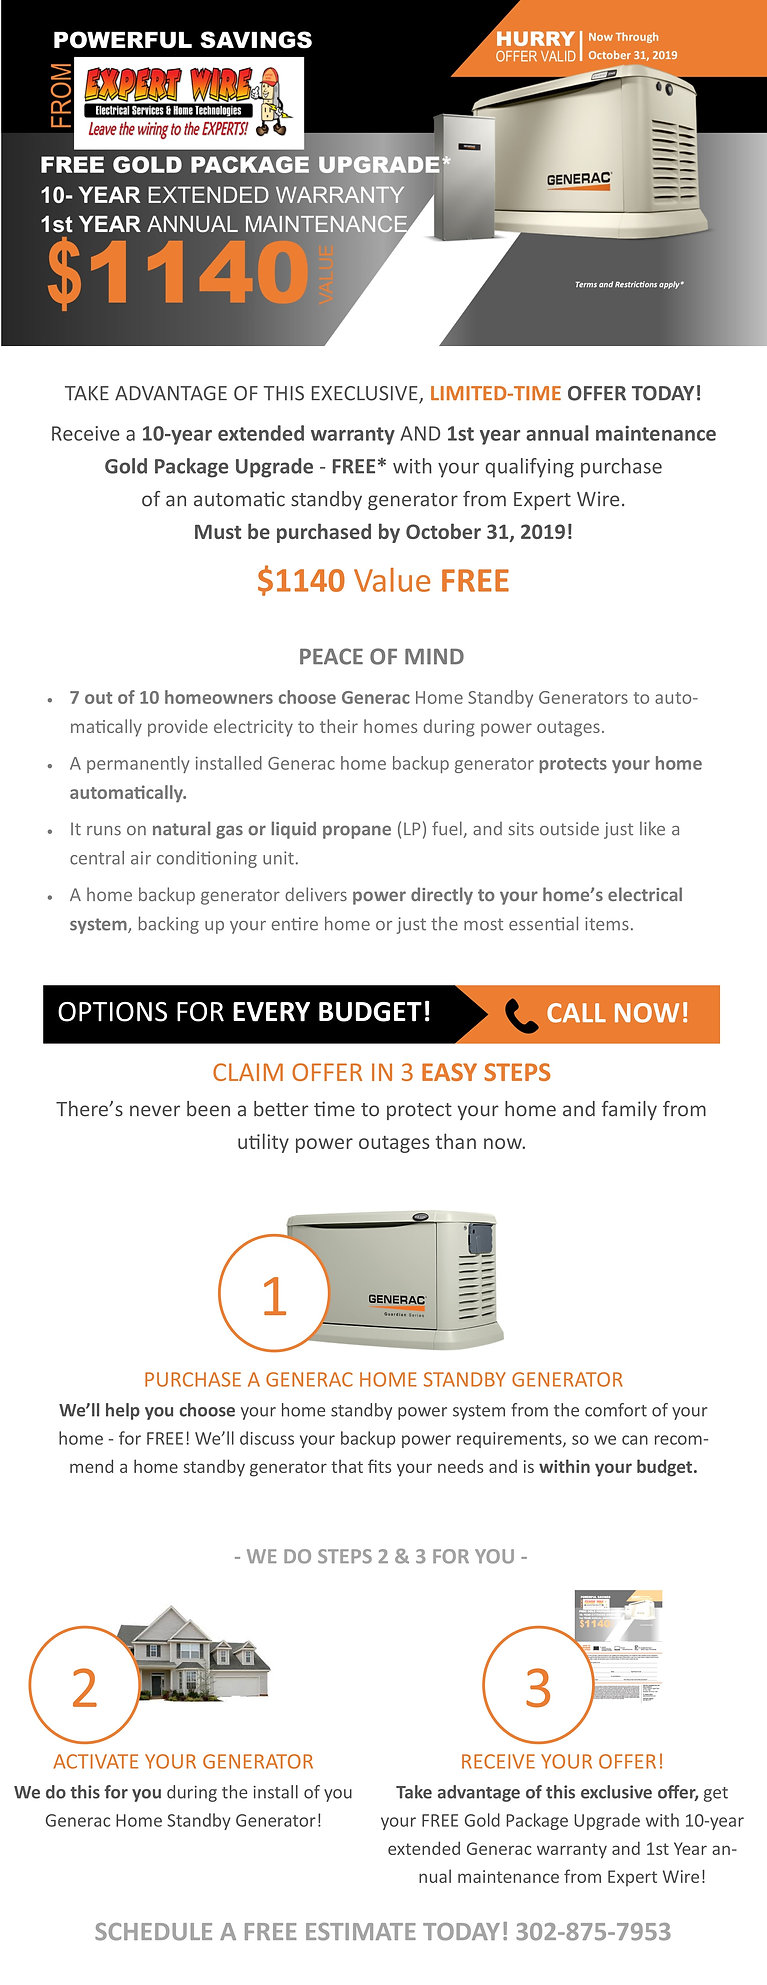 GENERAC GOLD PACKAGE UPGRADE FLYER.jpg